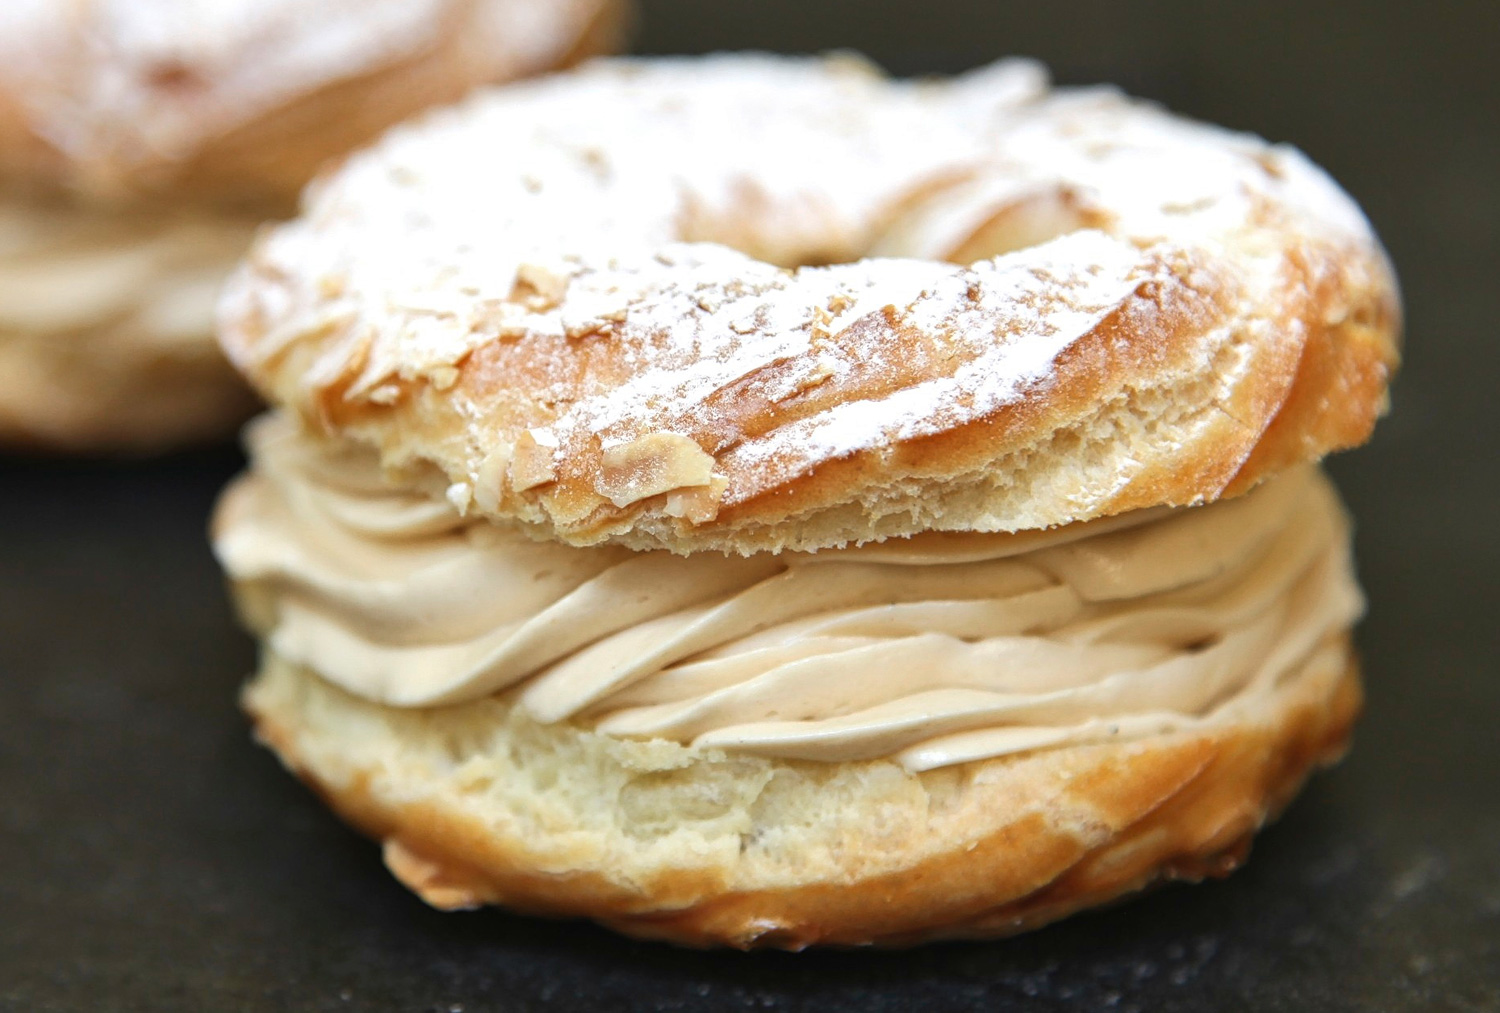 boulangerie-jade-products-cakes-tarts-pastries24.jpg